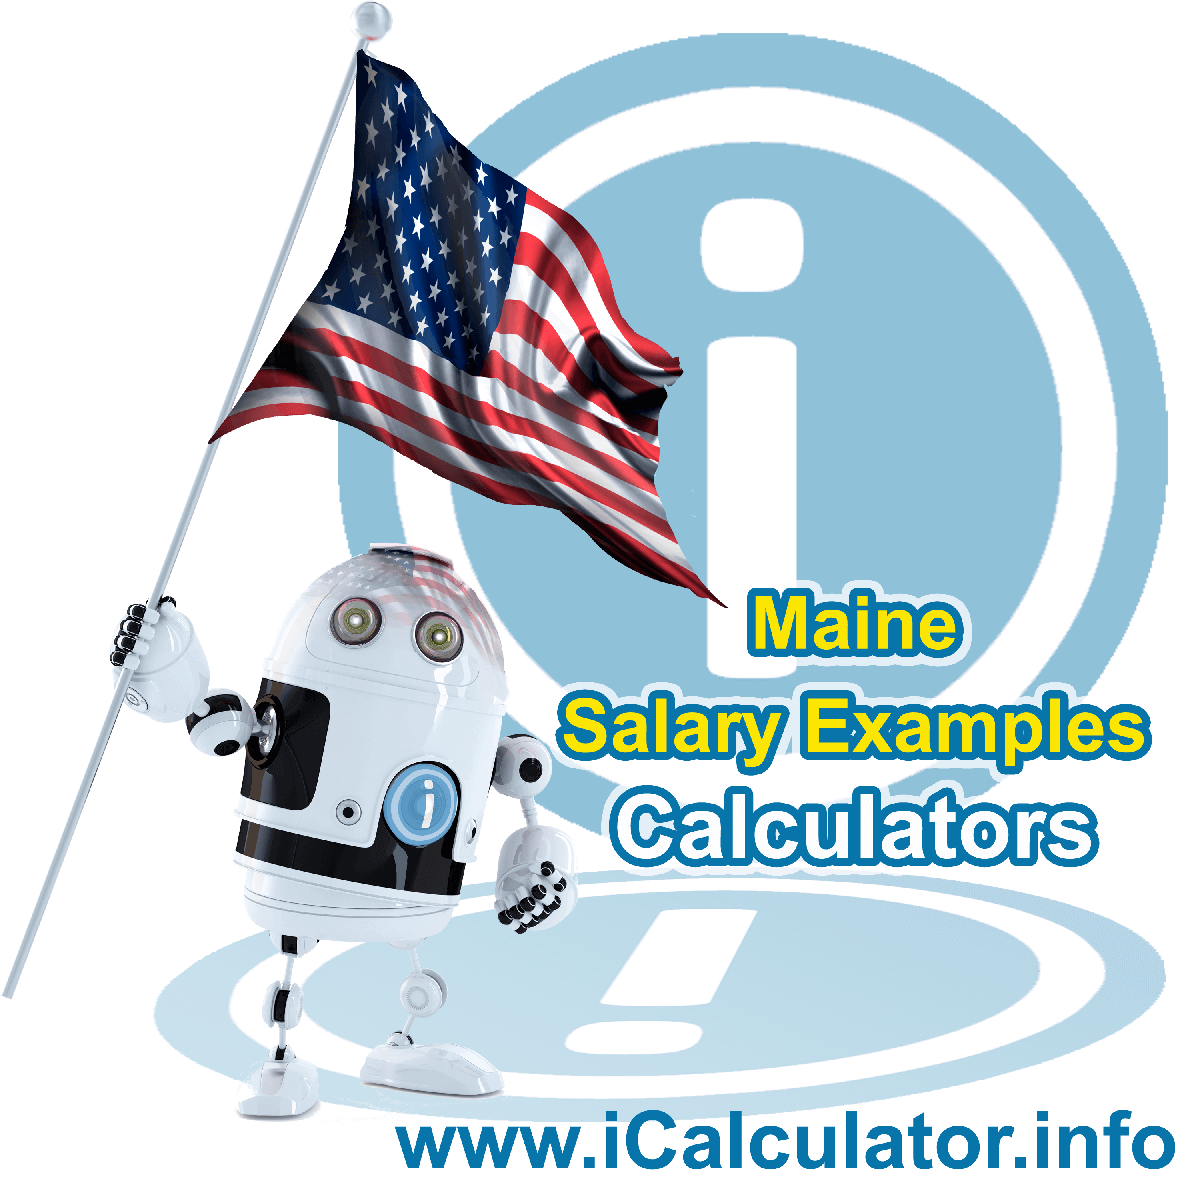 Maine Salary Example for $230.00 in 2020 | iCalculator | $230.00 salary example for employee and employer paying Maine State tincome taxes. Detailed salary after tax calculation including Maine State Tax, Federal State Tax, Medicare Deductions, Social Security, Capital Gains and other income tax and salary deductions complete with supporting Maine state tax tables